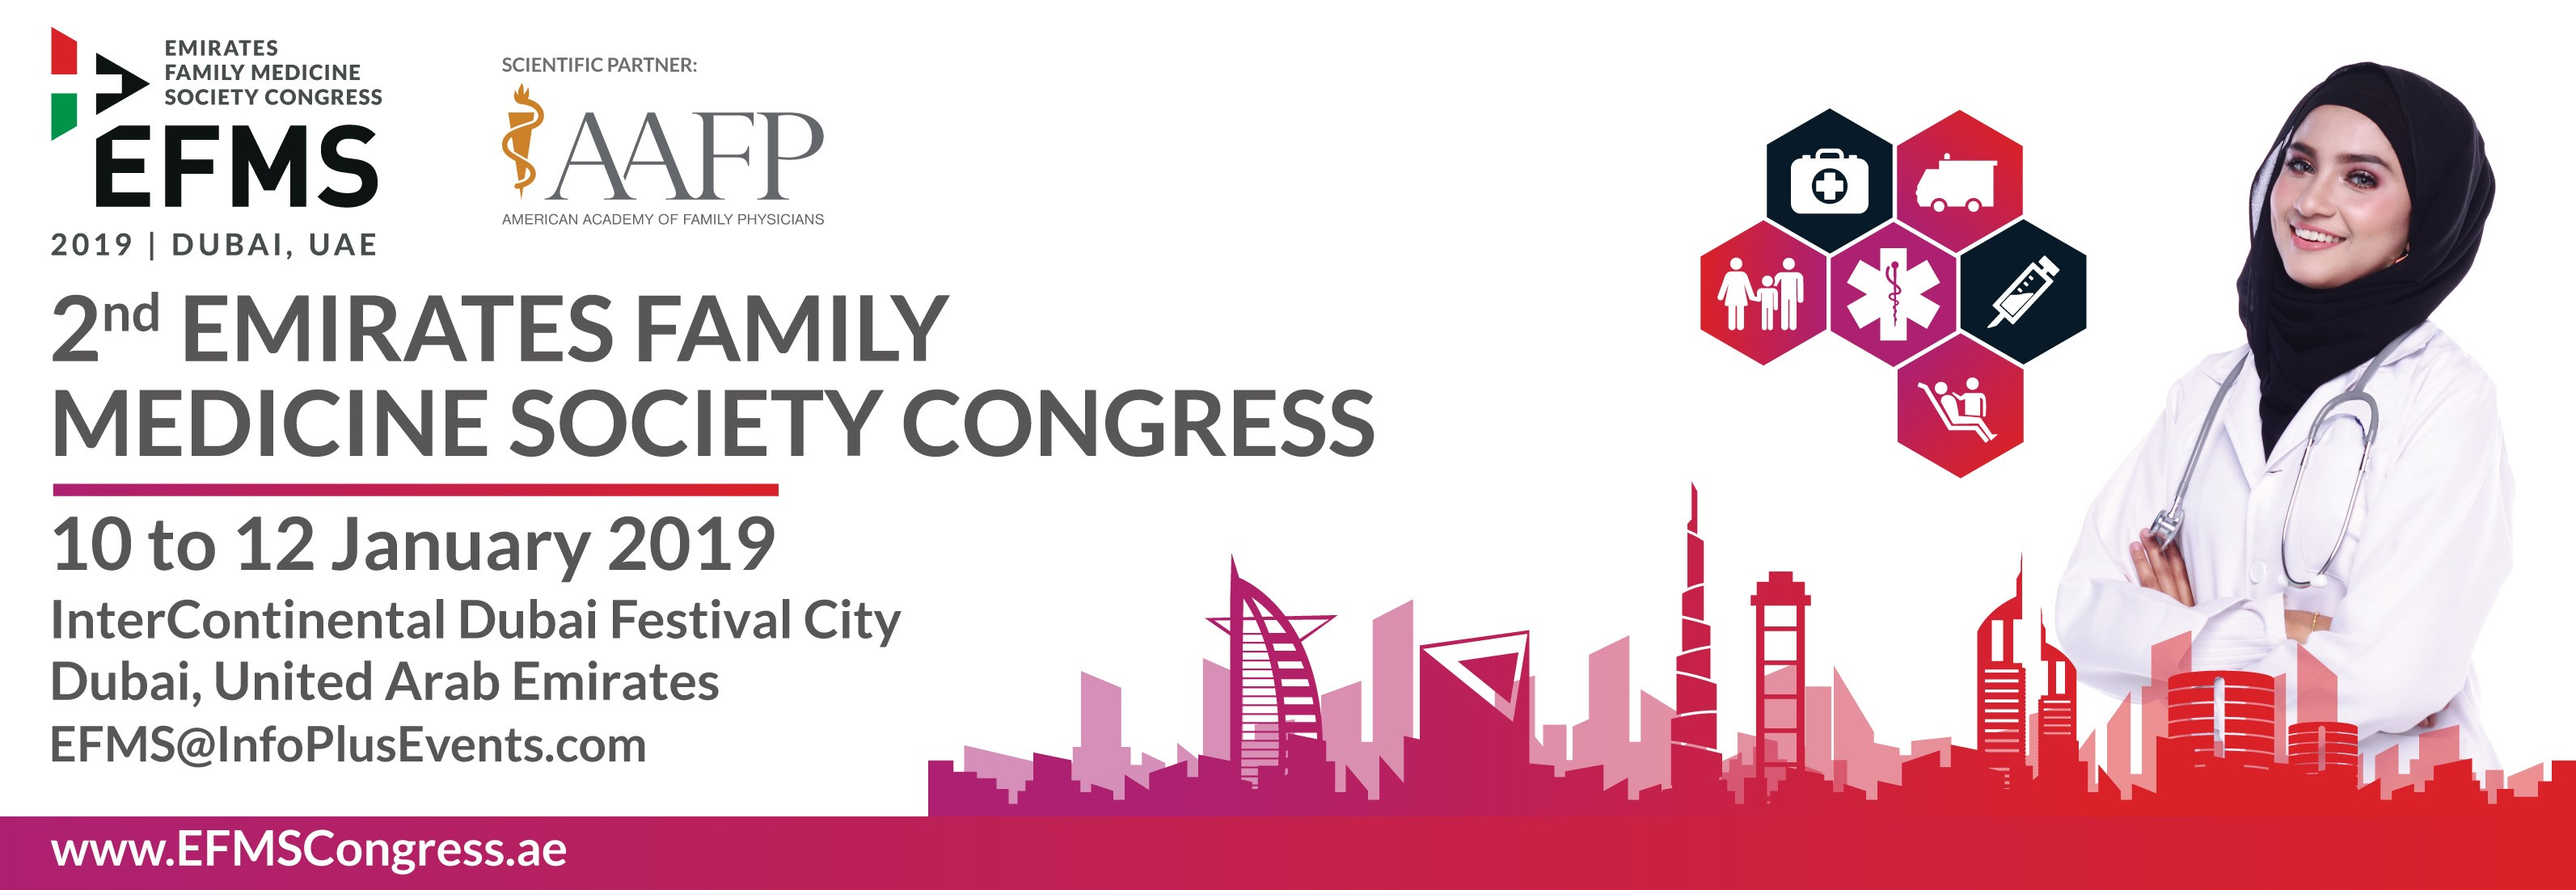 The 2nd Emirates Family Medicine Society Congress, 10th - 12th January, 2019